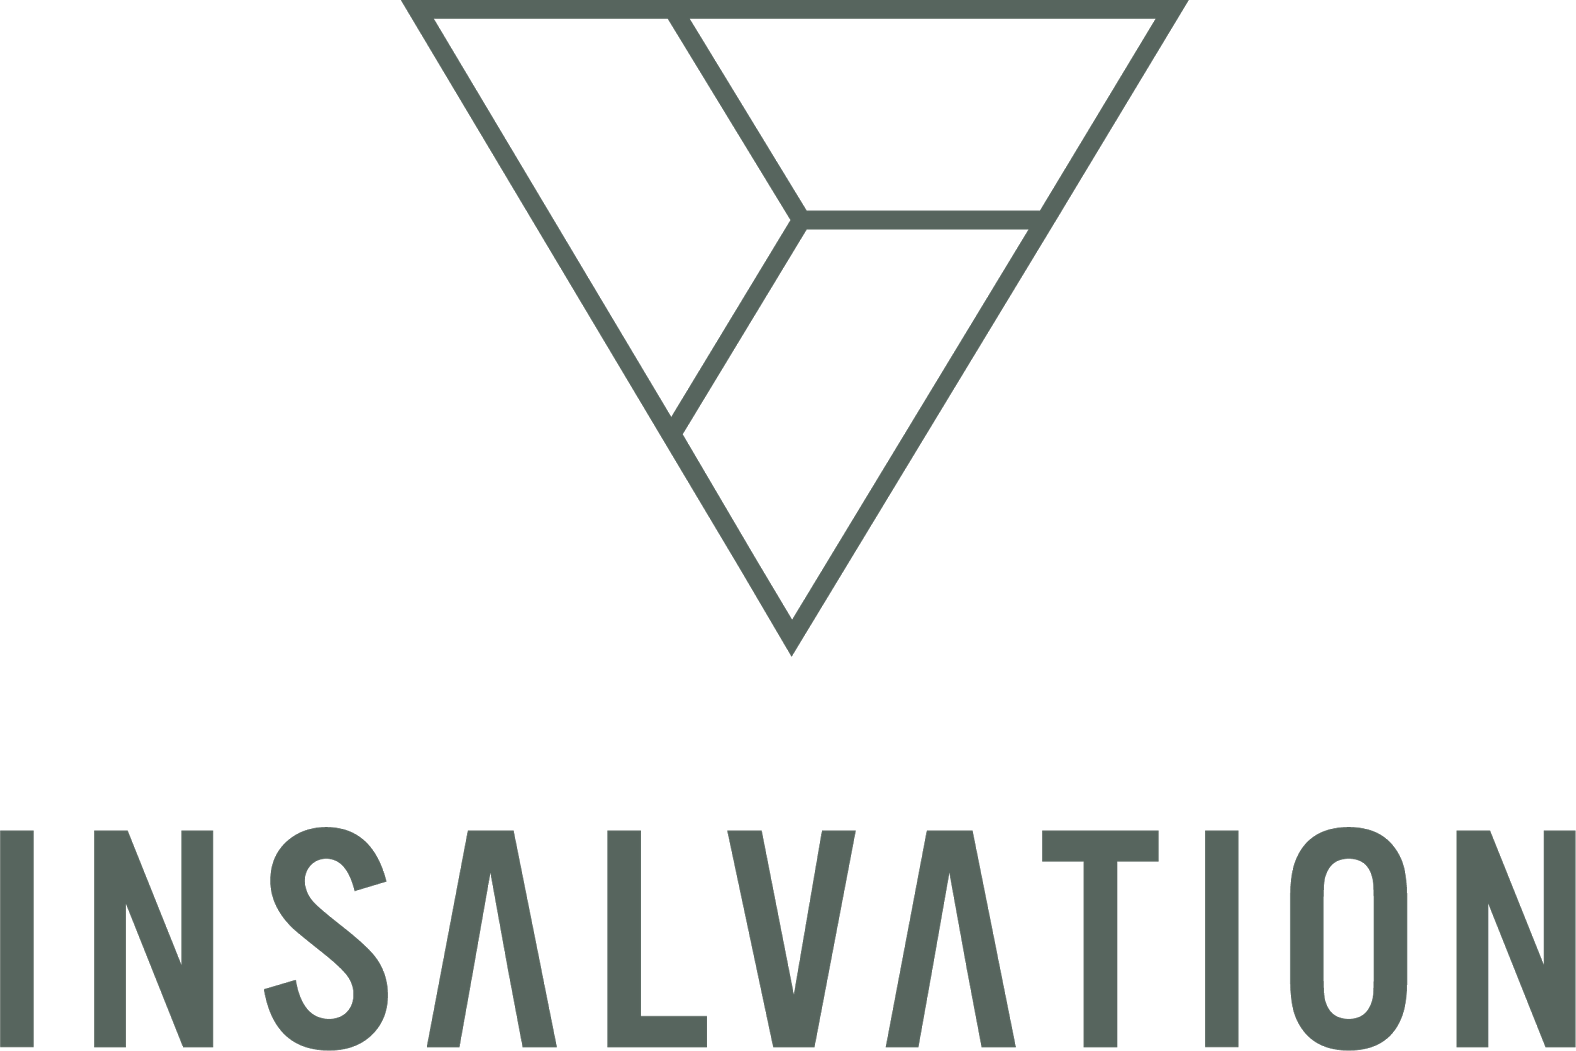 InSalvation_20170314.png